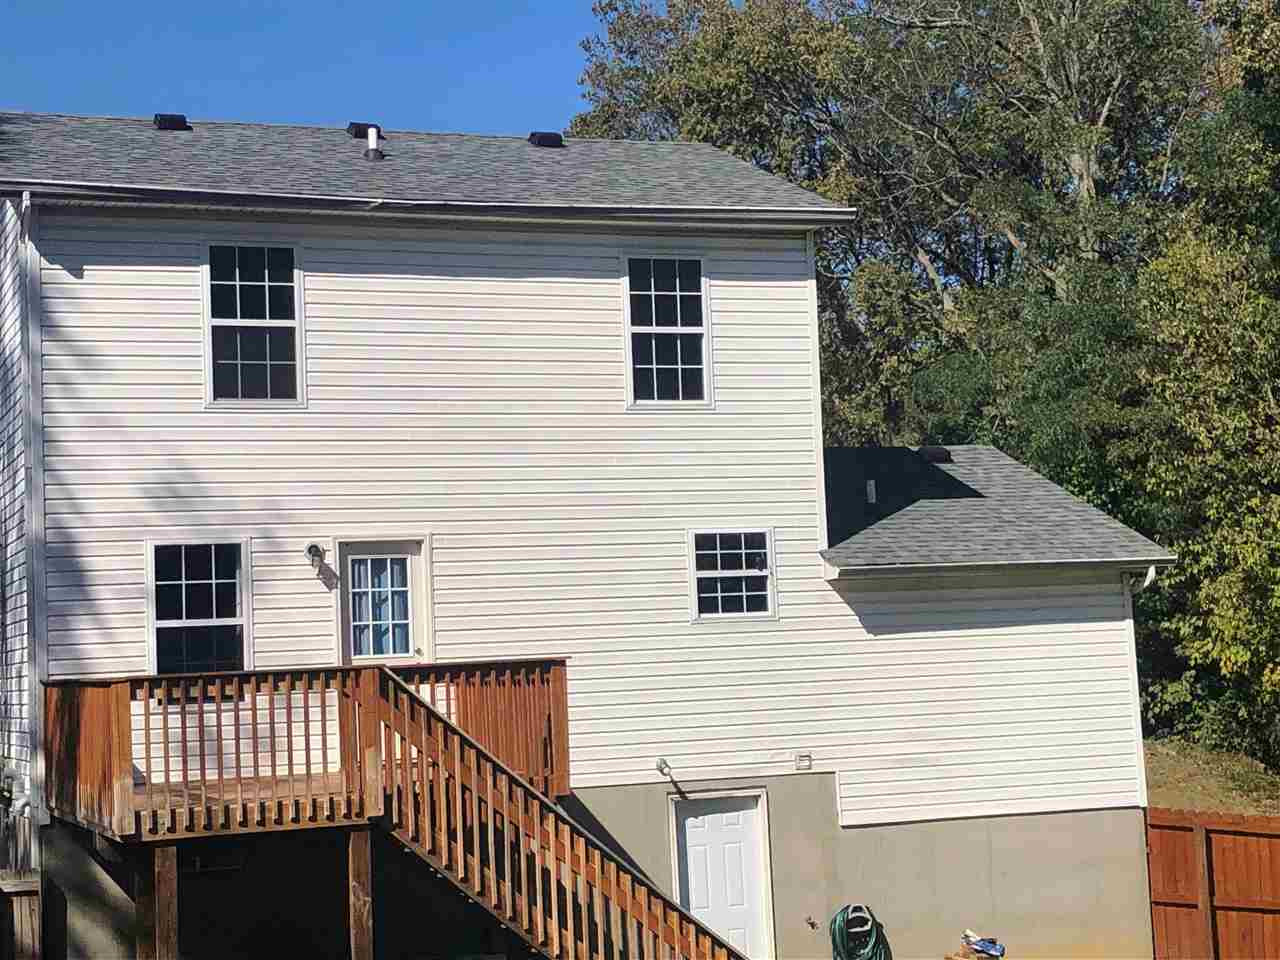 Photo 3 for 215 Palace Ave Elsmere, KY 41018